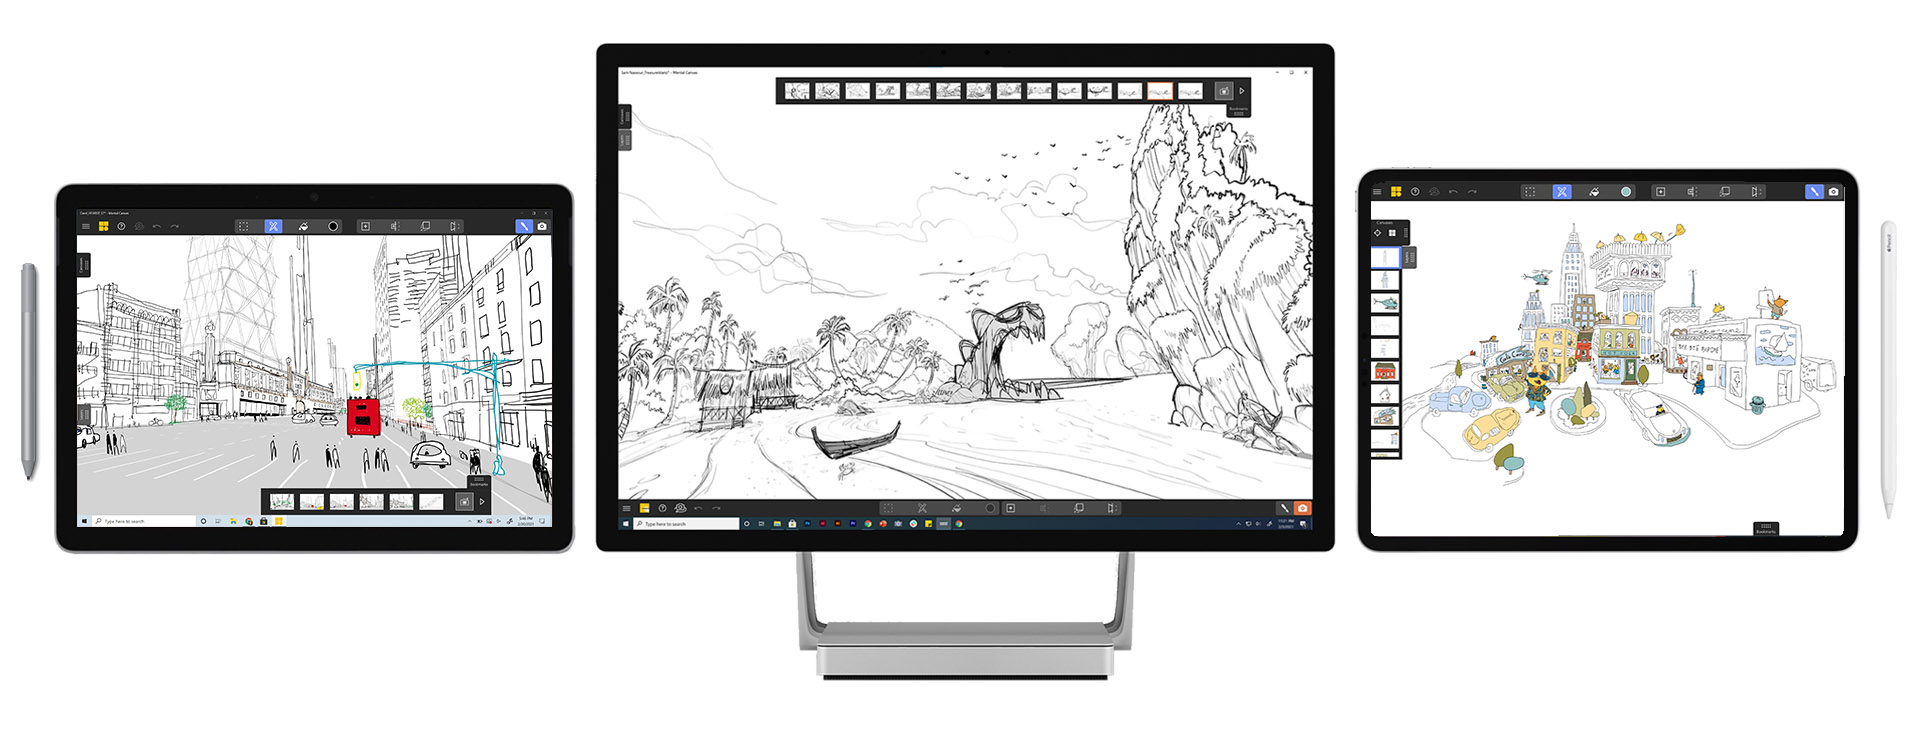 3 devices with mental canvas scenes, surface pro, surface studio and ipad pro